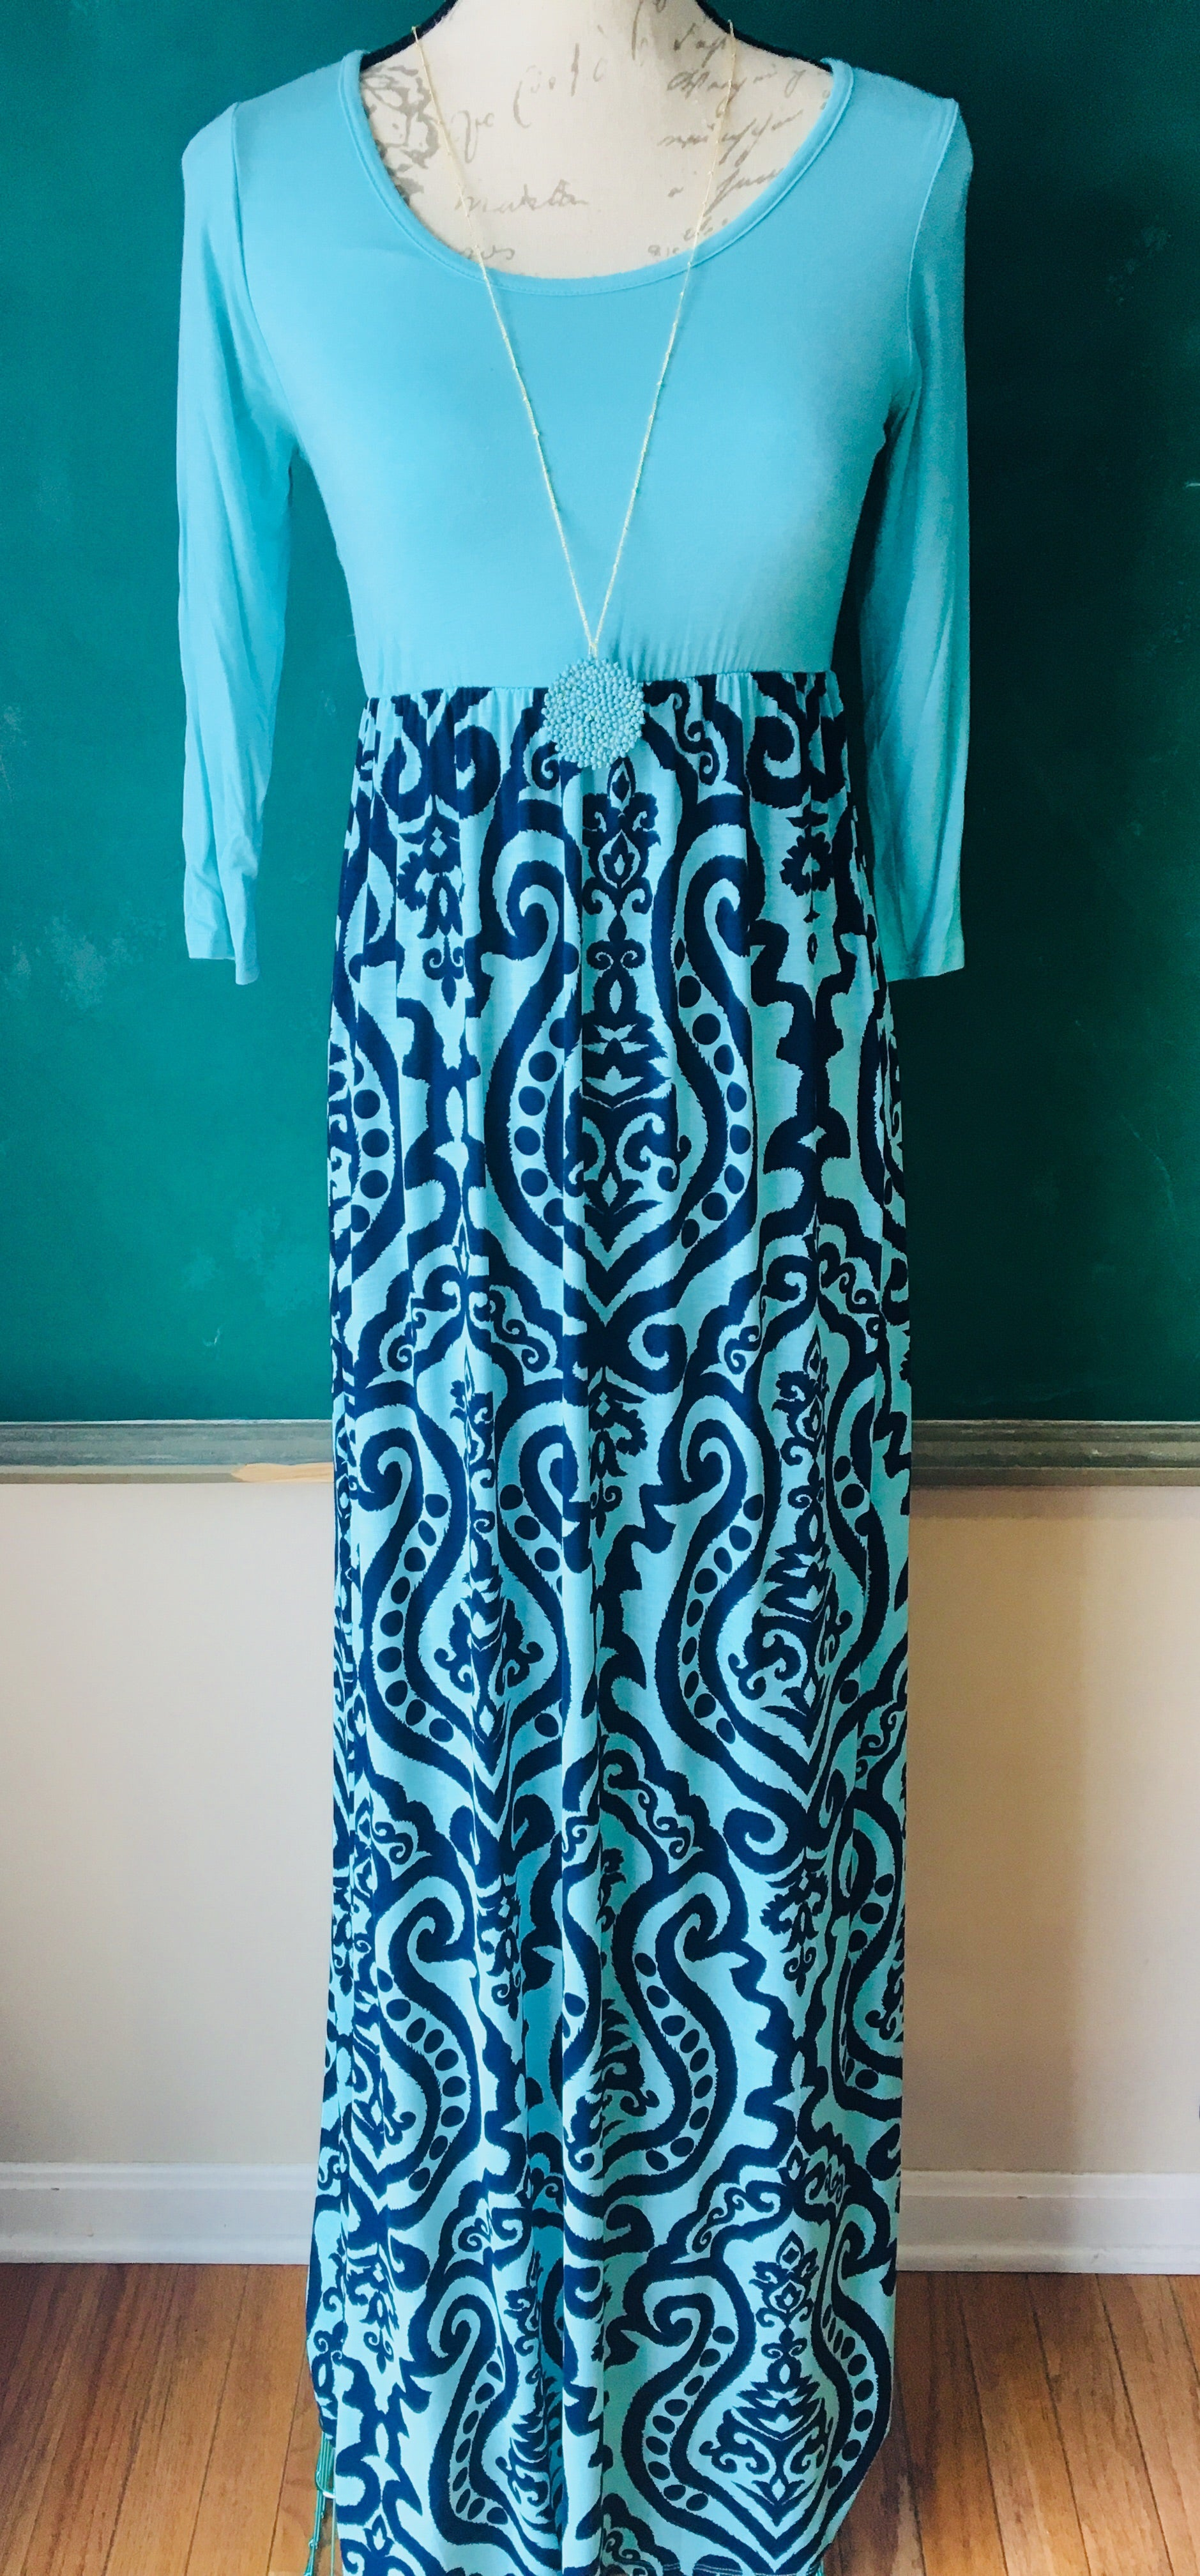 navy, turquoise blue, damask, print, dress, knit, soft, comfy, bellamie, spring, summer, easter, www.tooquteboutique.com, too qute boutique